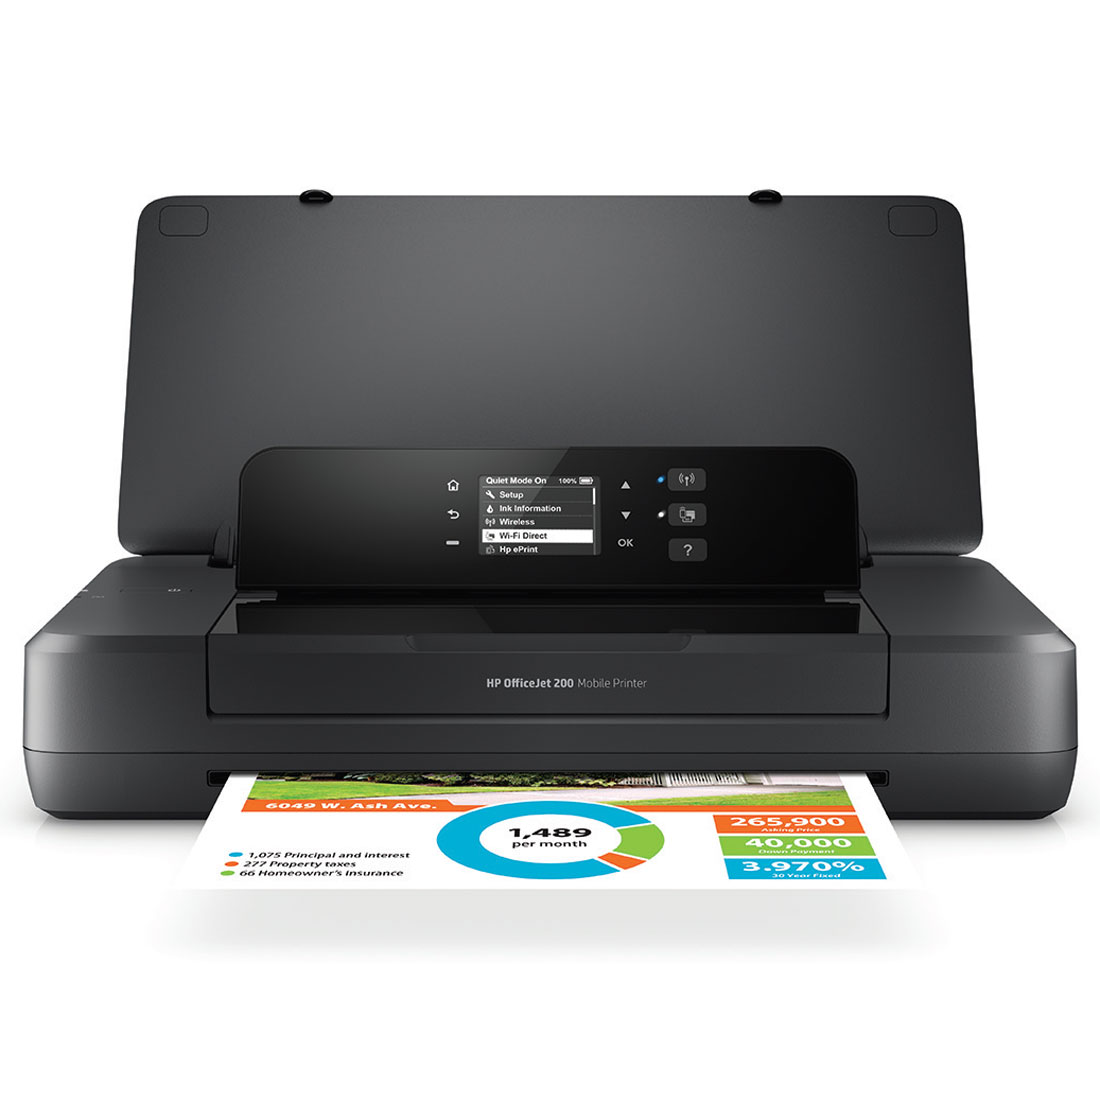 Imprimante jet d'encre HP Officejet 200 Mobile Imprimante jet d'encre portable (USB 2.0 / Wi-Fi / AirPrint / ePrint)